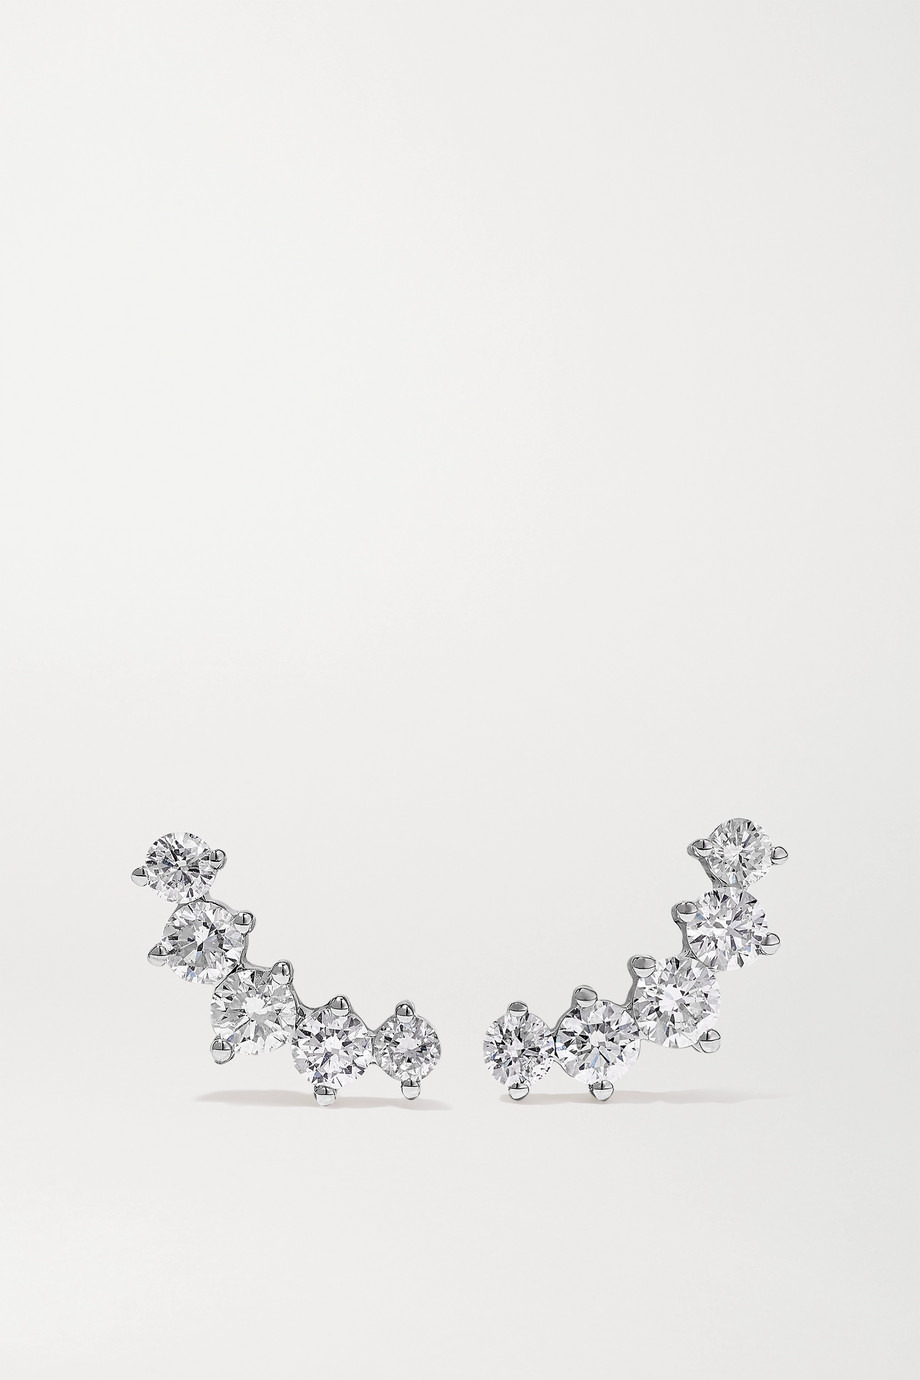 Anita Ko Arc 18-karat white gold diamond earrings